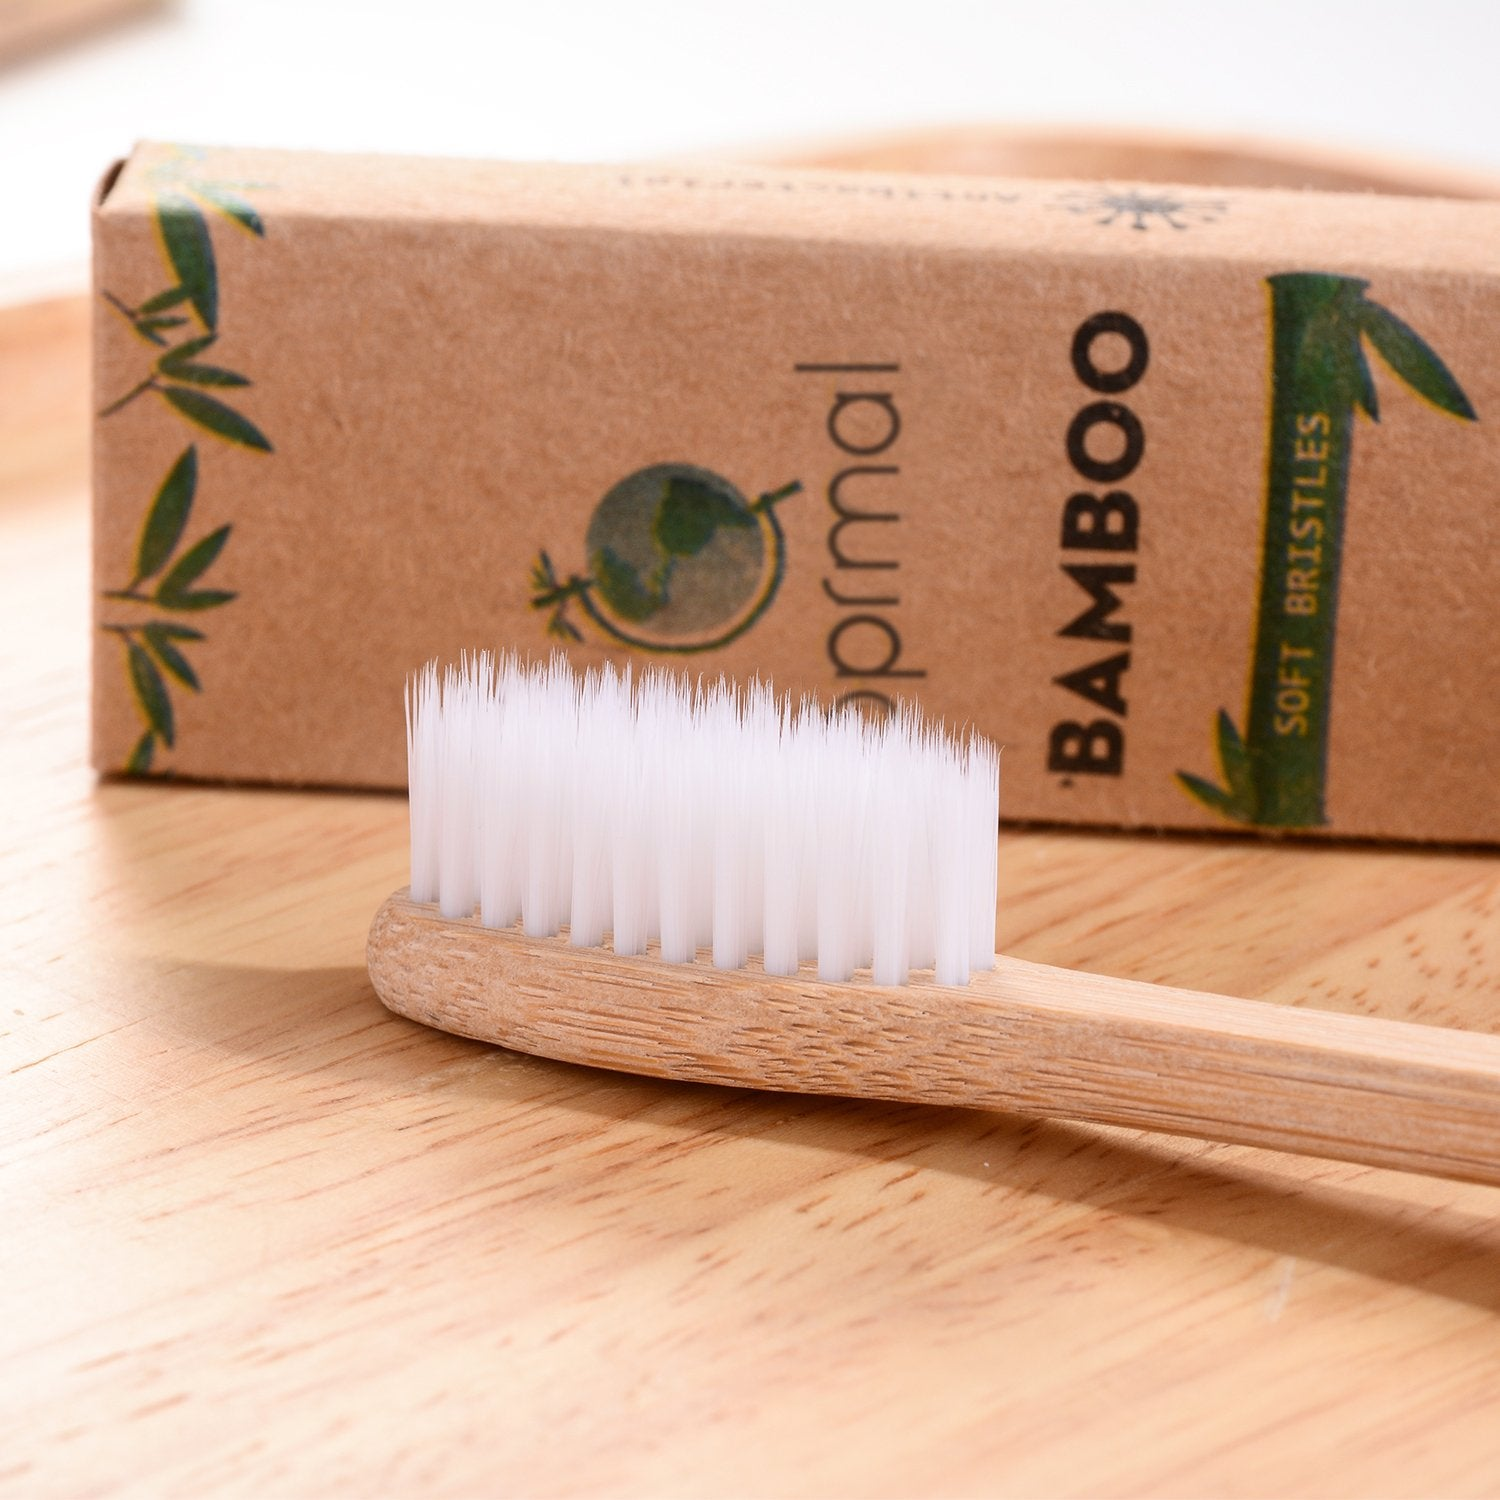 5 Pack of Sprmal Bamboo Organic Toothbrushes